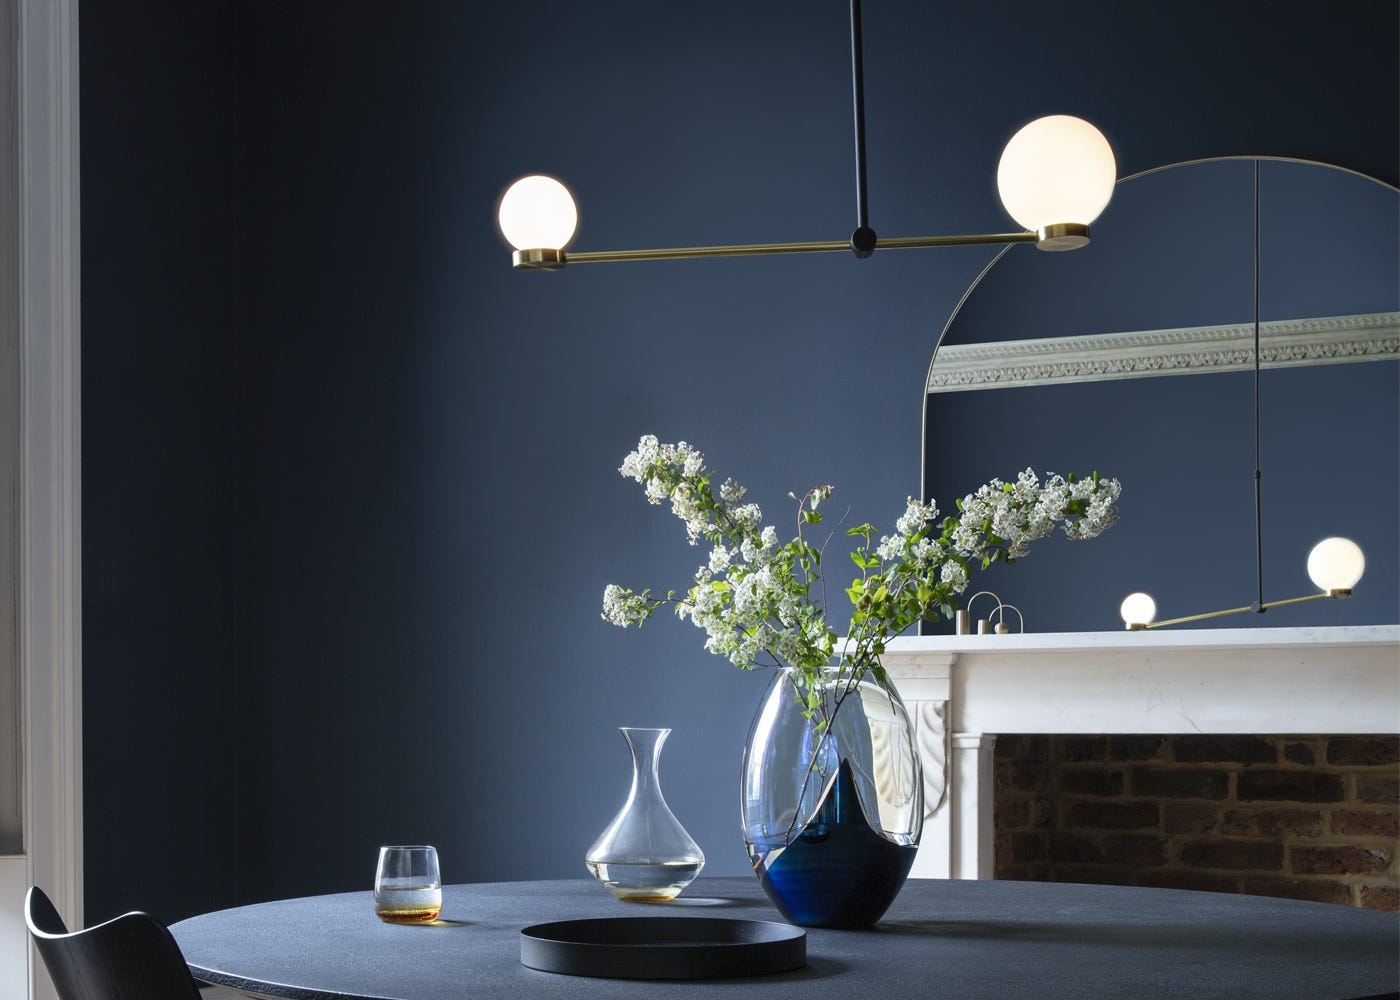 Balance pendant light (on), fine edge over mantel mirror, clay table, slick large vase, antique mirrored tray, amber decanter